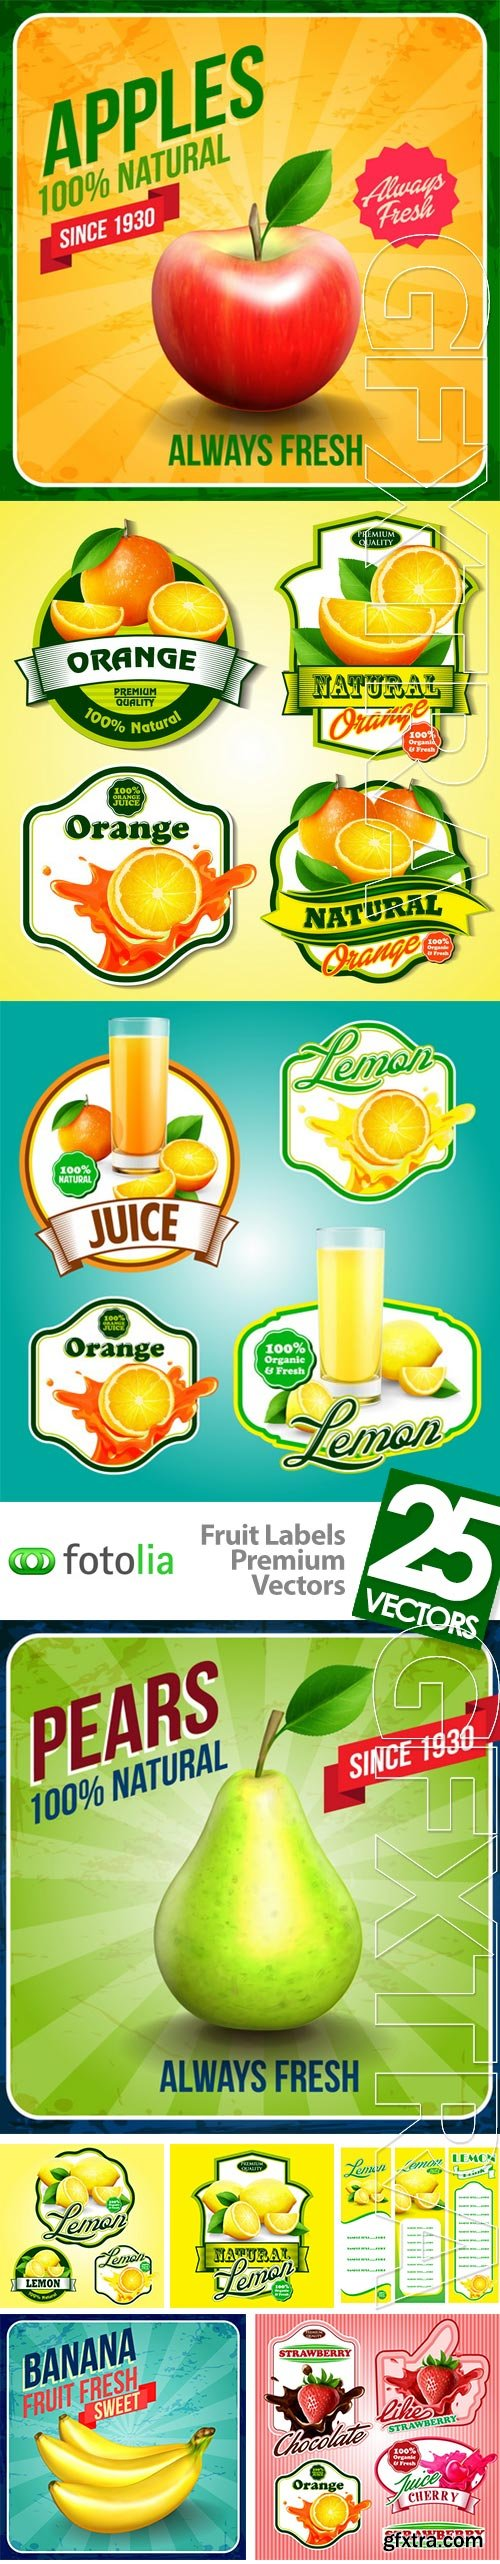 Fruit Labels Premium Vectors 25xEPS